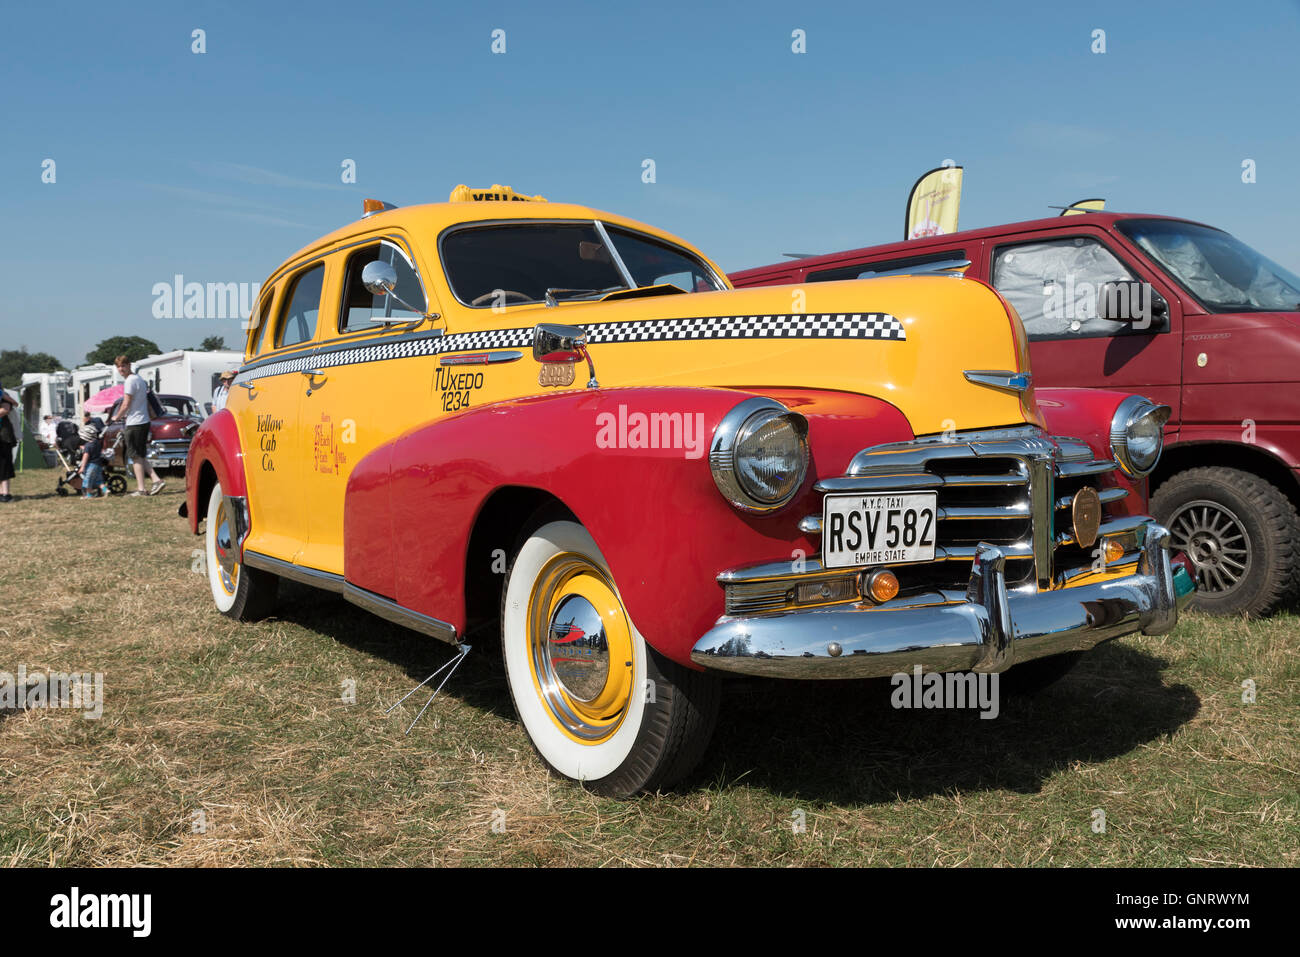 old-new-york-yellow-taxi-cab-at-steam-rally-and-country-fair-stow-GNRWYM.jpg